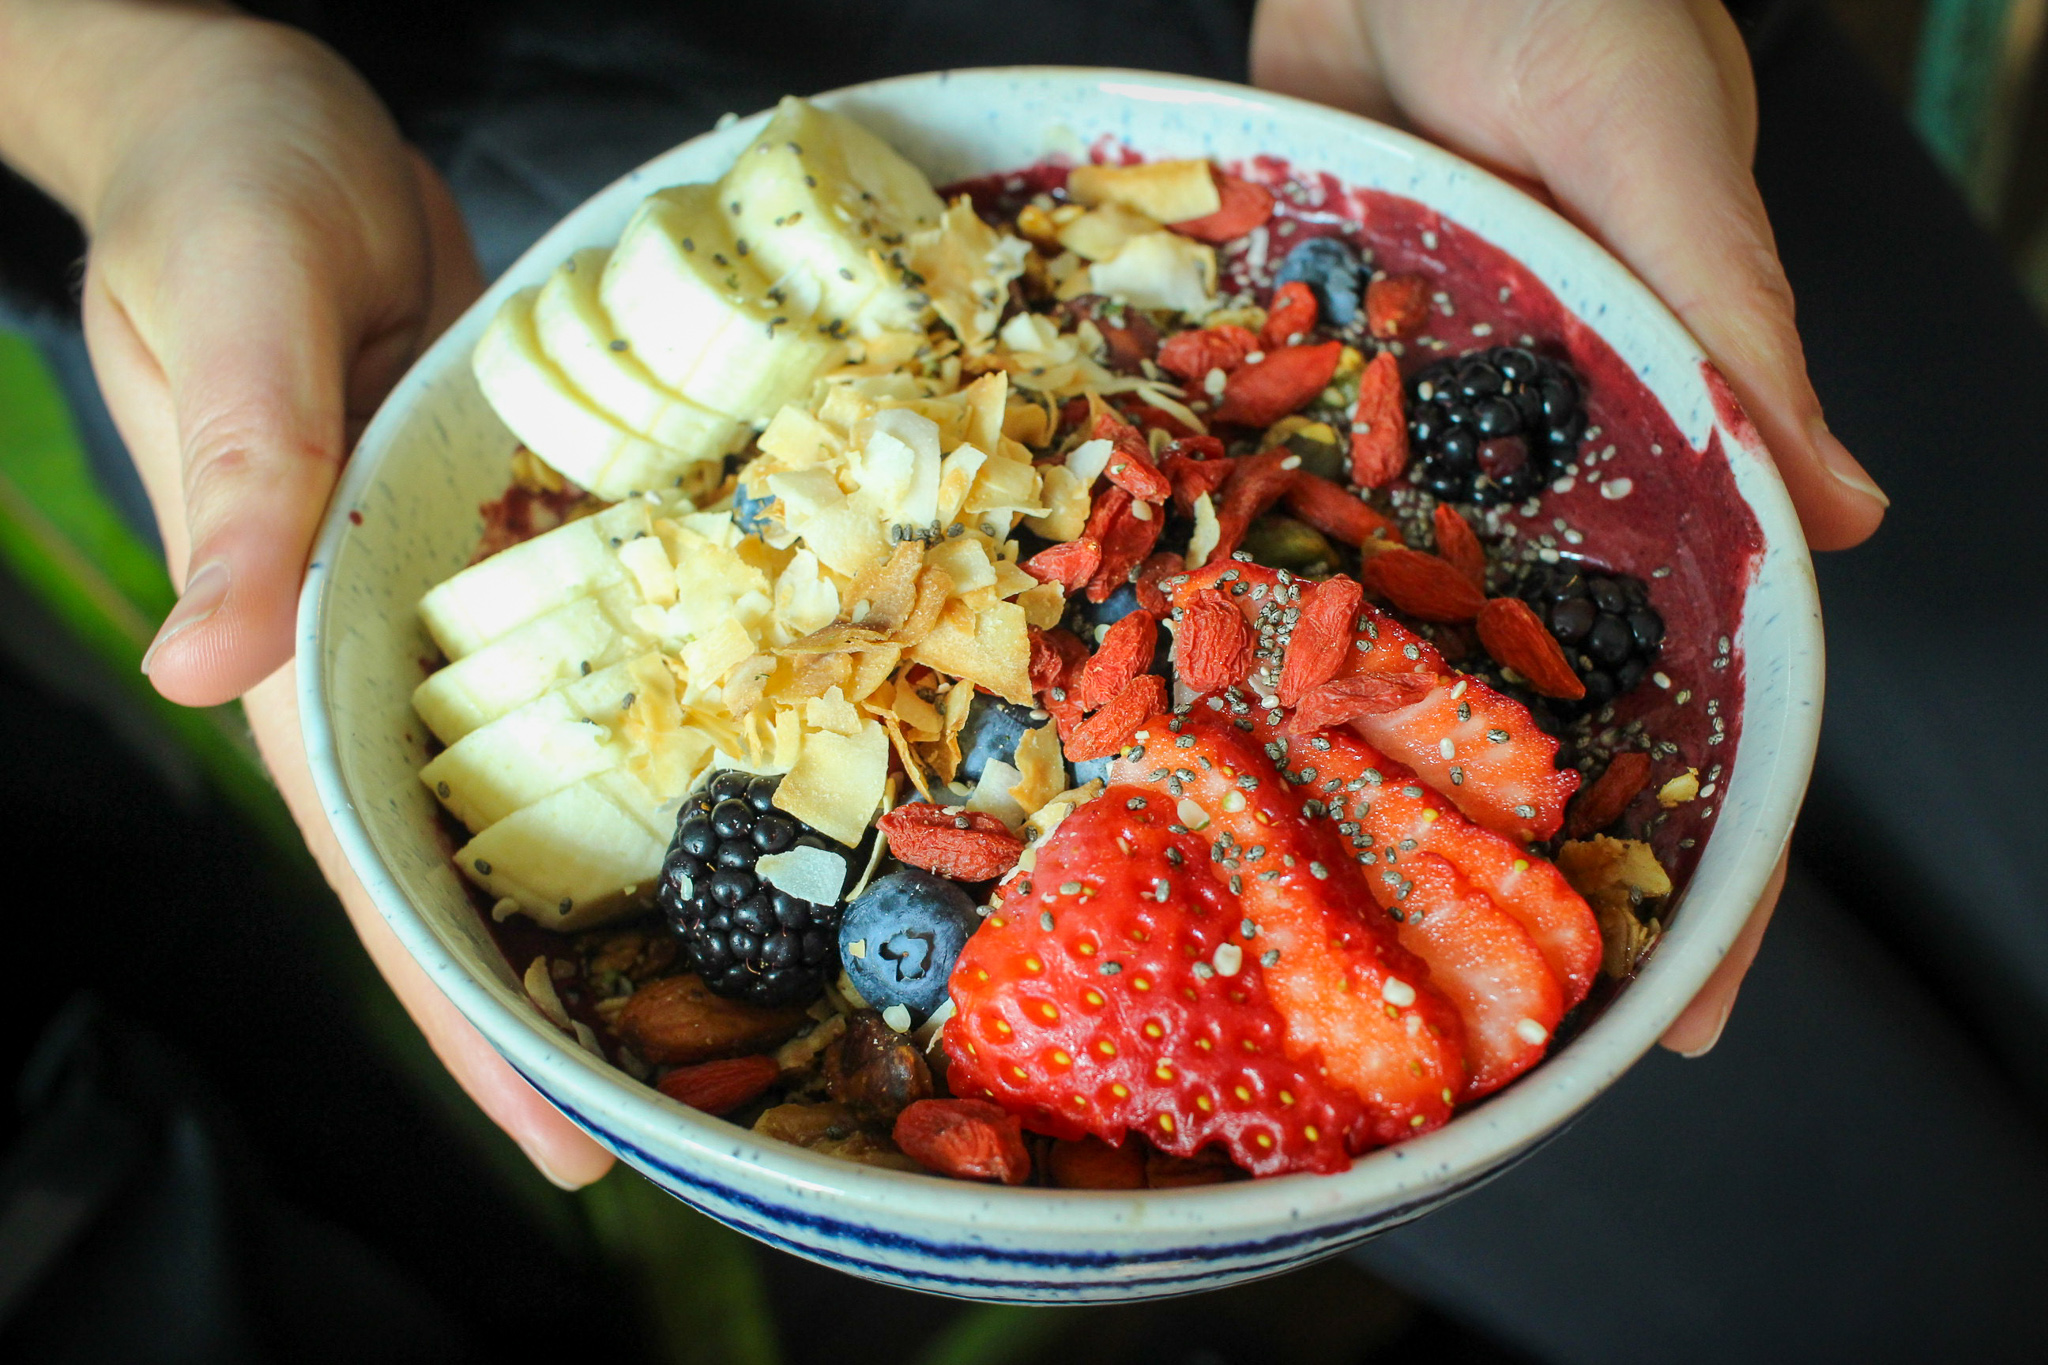 Red velvet smoothie bowl: beet, avocado, berries, date, cocoa, coconut butter, nut milk, and maca–topped with homemade granola, banana, goji berries, cocoa nibs, coconut and hemp seeds.